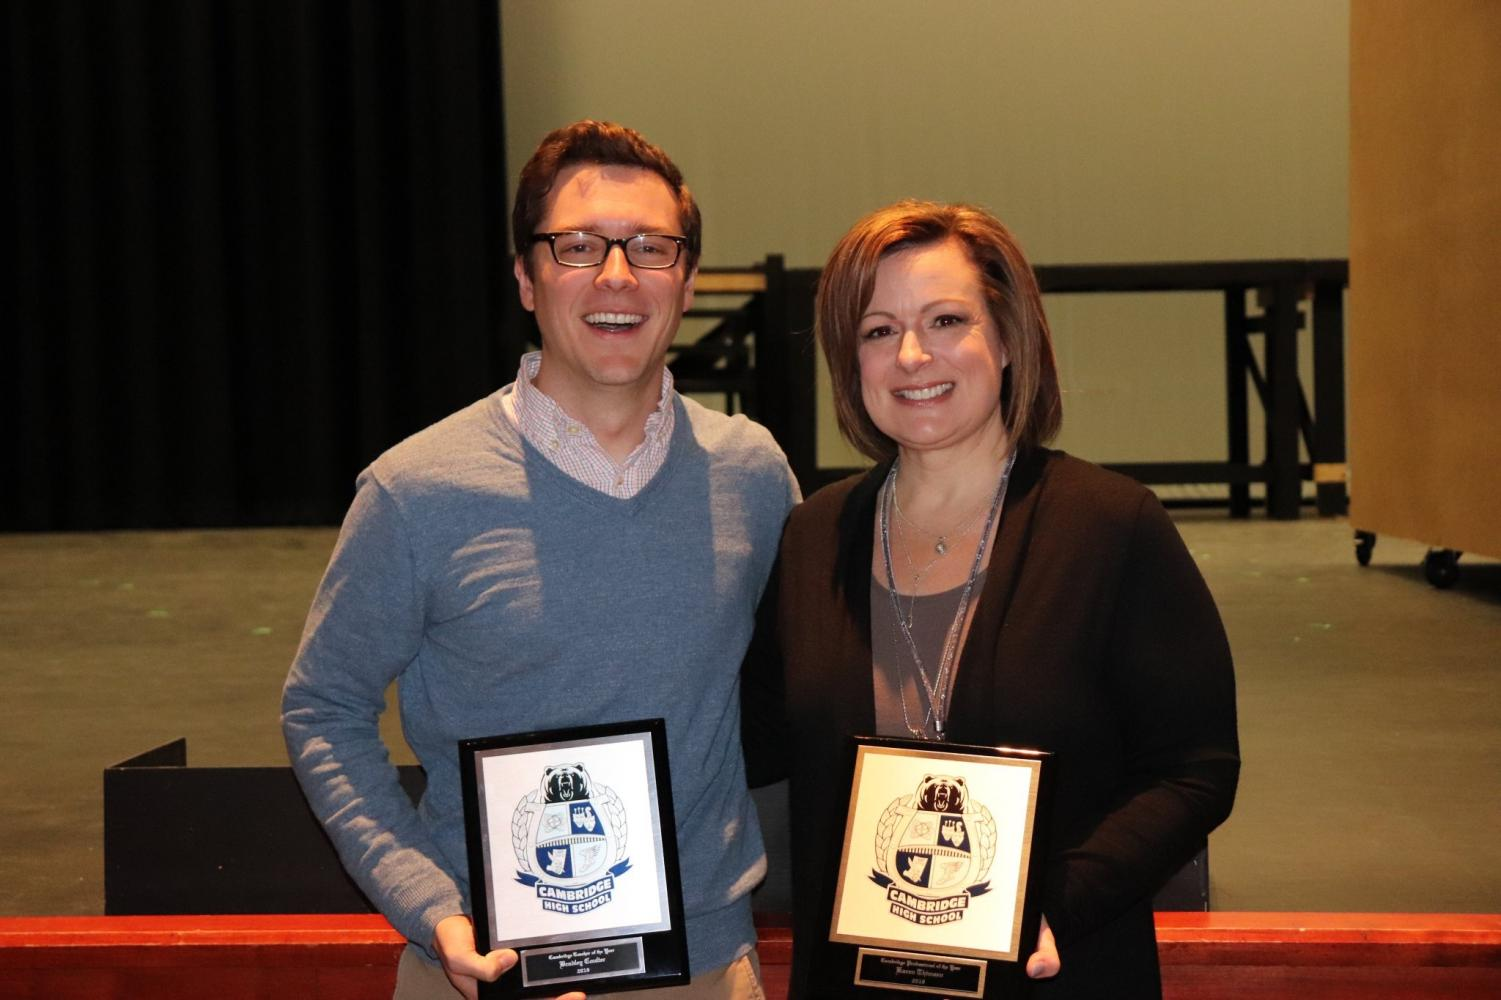 Professional of the Year Karen Thimsen and Teacher of the Year Brad Coulter with their award plaques.